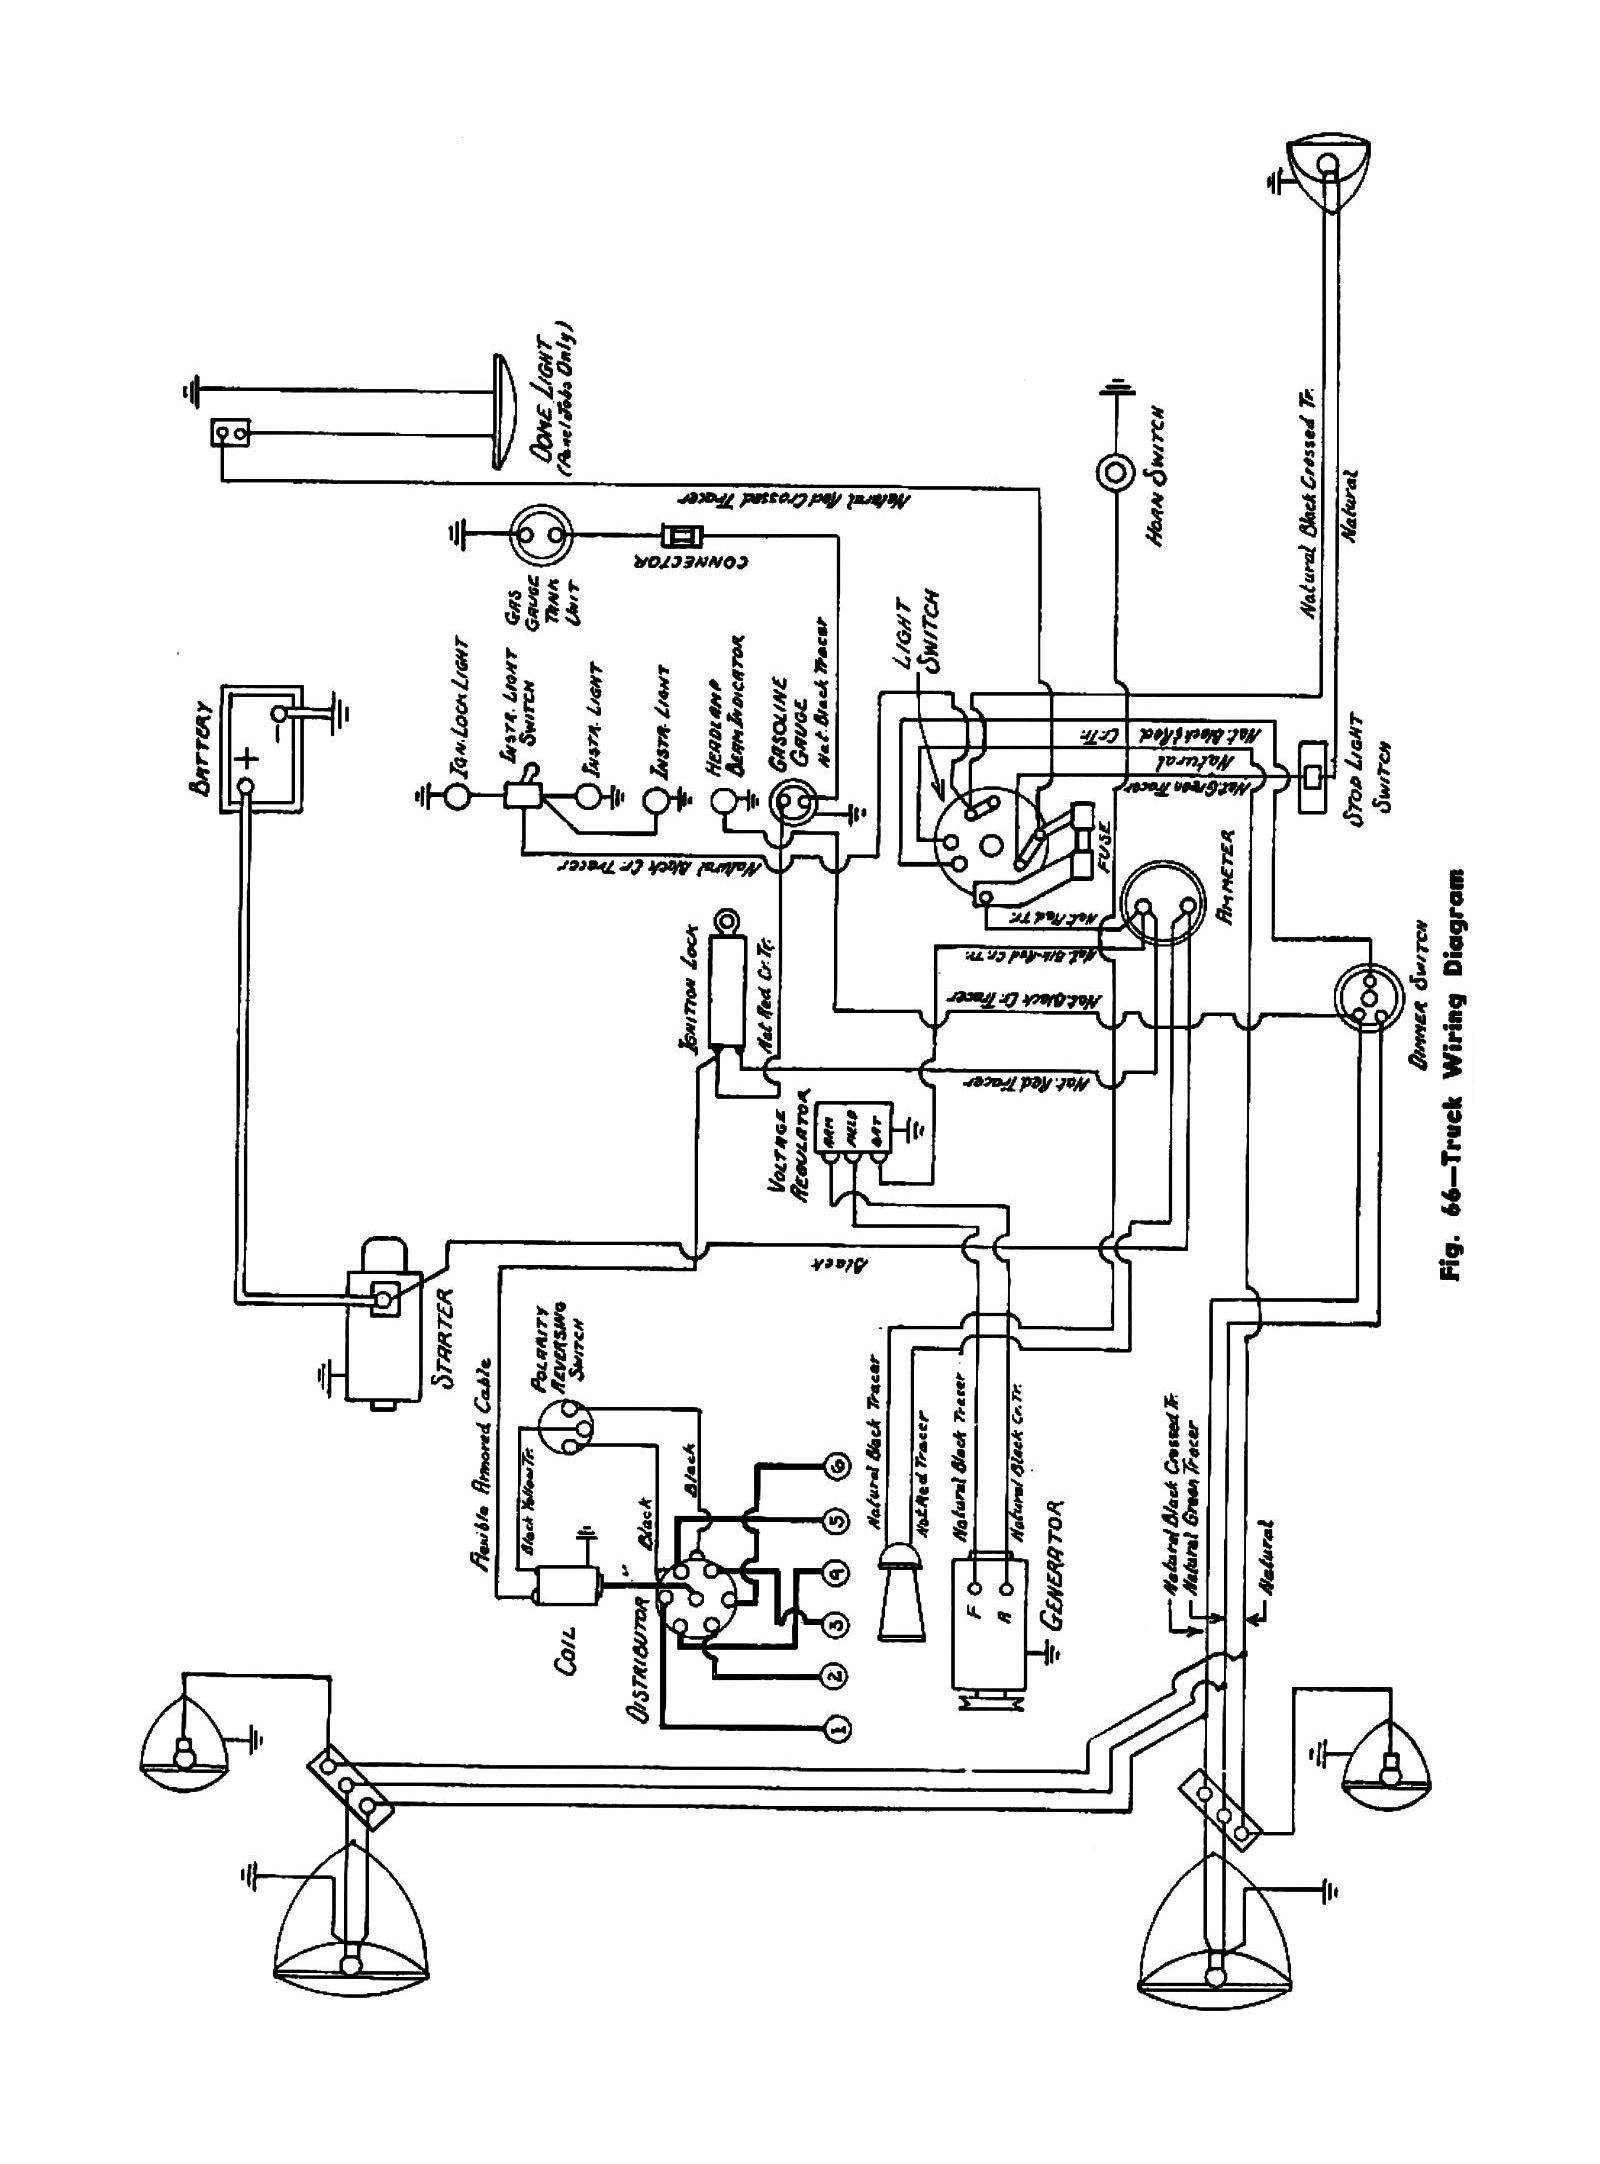 Showphoto additionally  moreover Honda Cb900f Hor  Ignition System Wiring Diagram likewise Electrical Outlet Wire Splicing moreover Electrical. on wiring diagram generator to house